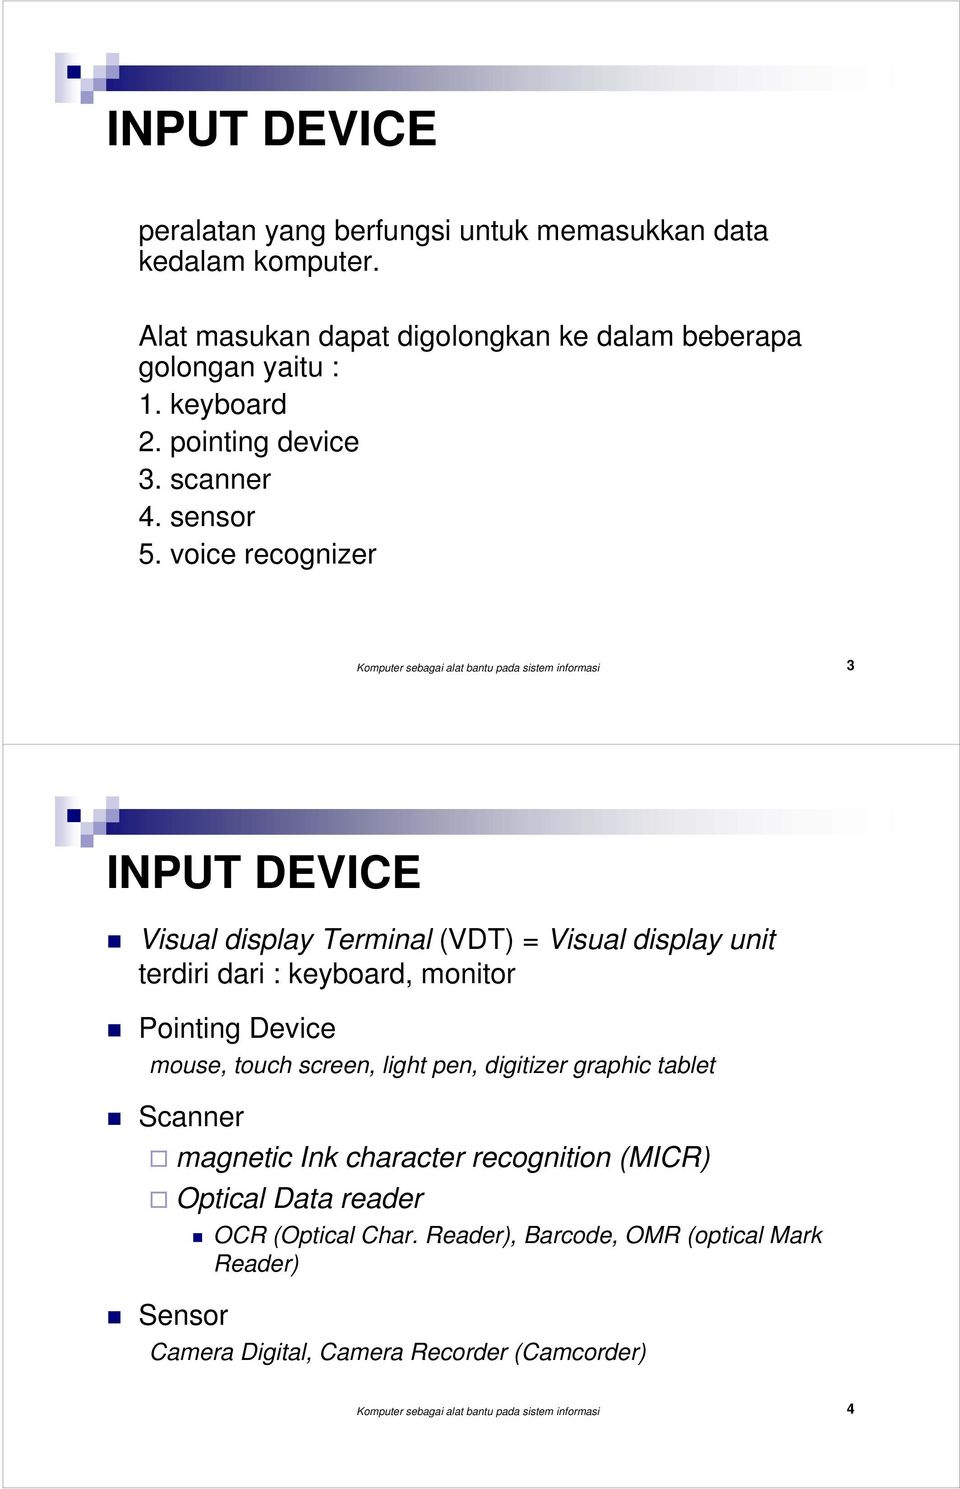 voice recognizer Komputer sebagai alat bantu pada sistem informasi 3 INPUT DEVICE Visual display Terminal (VDT) = Visual display unit terdiri dari : keyboard, monitor